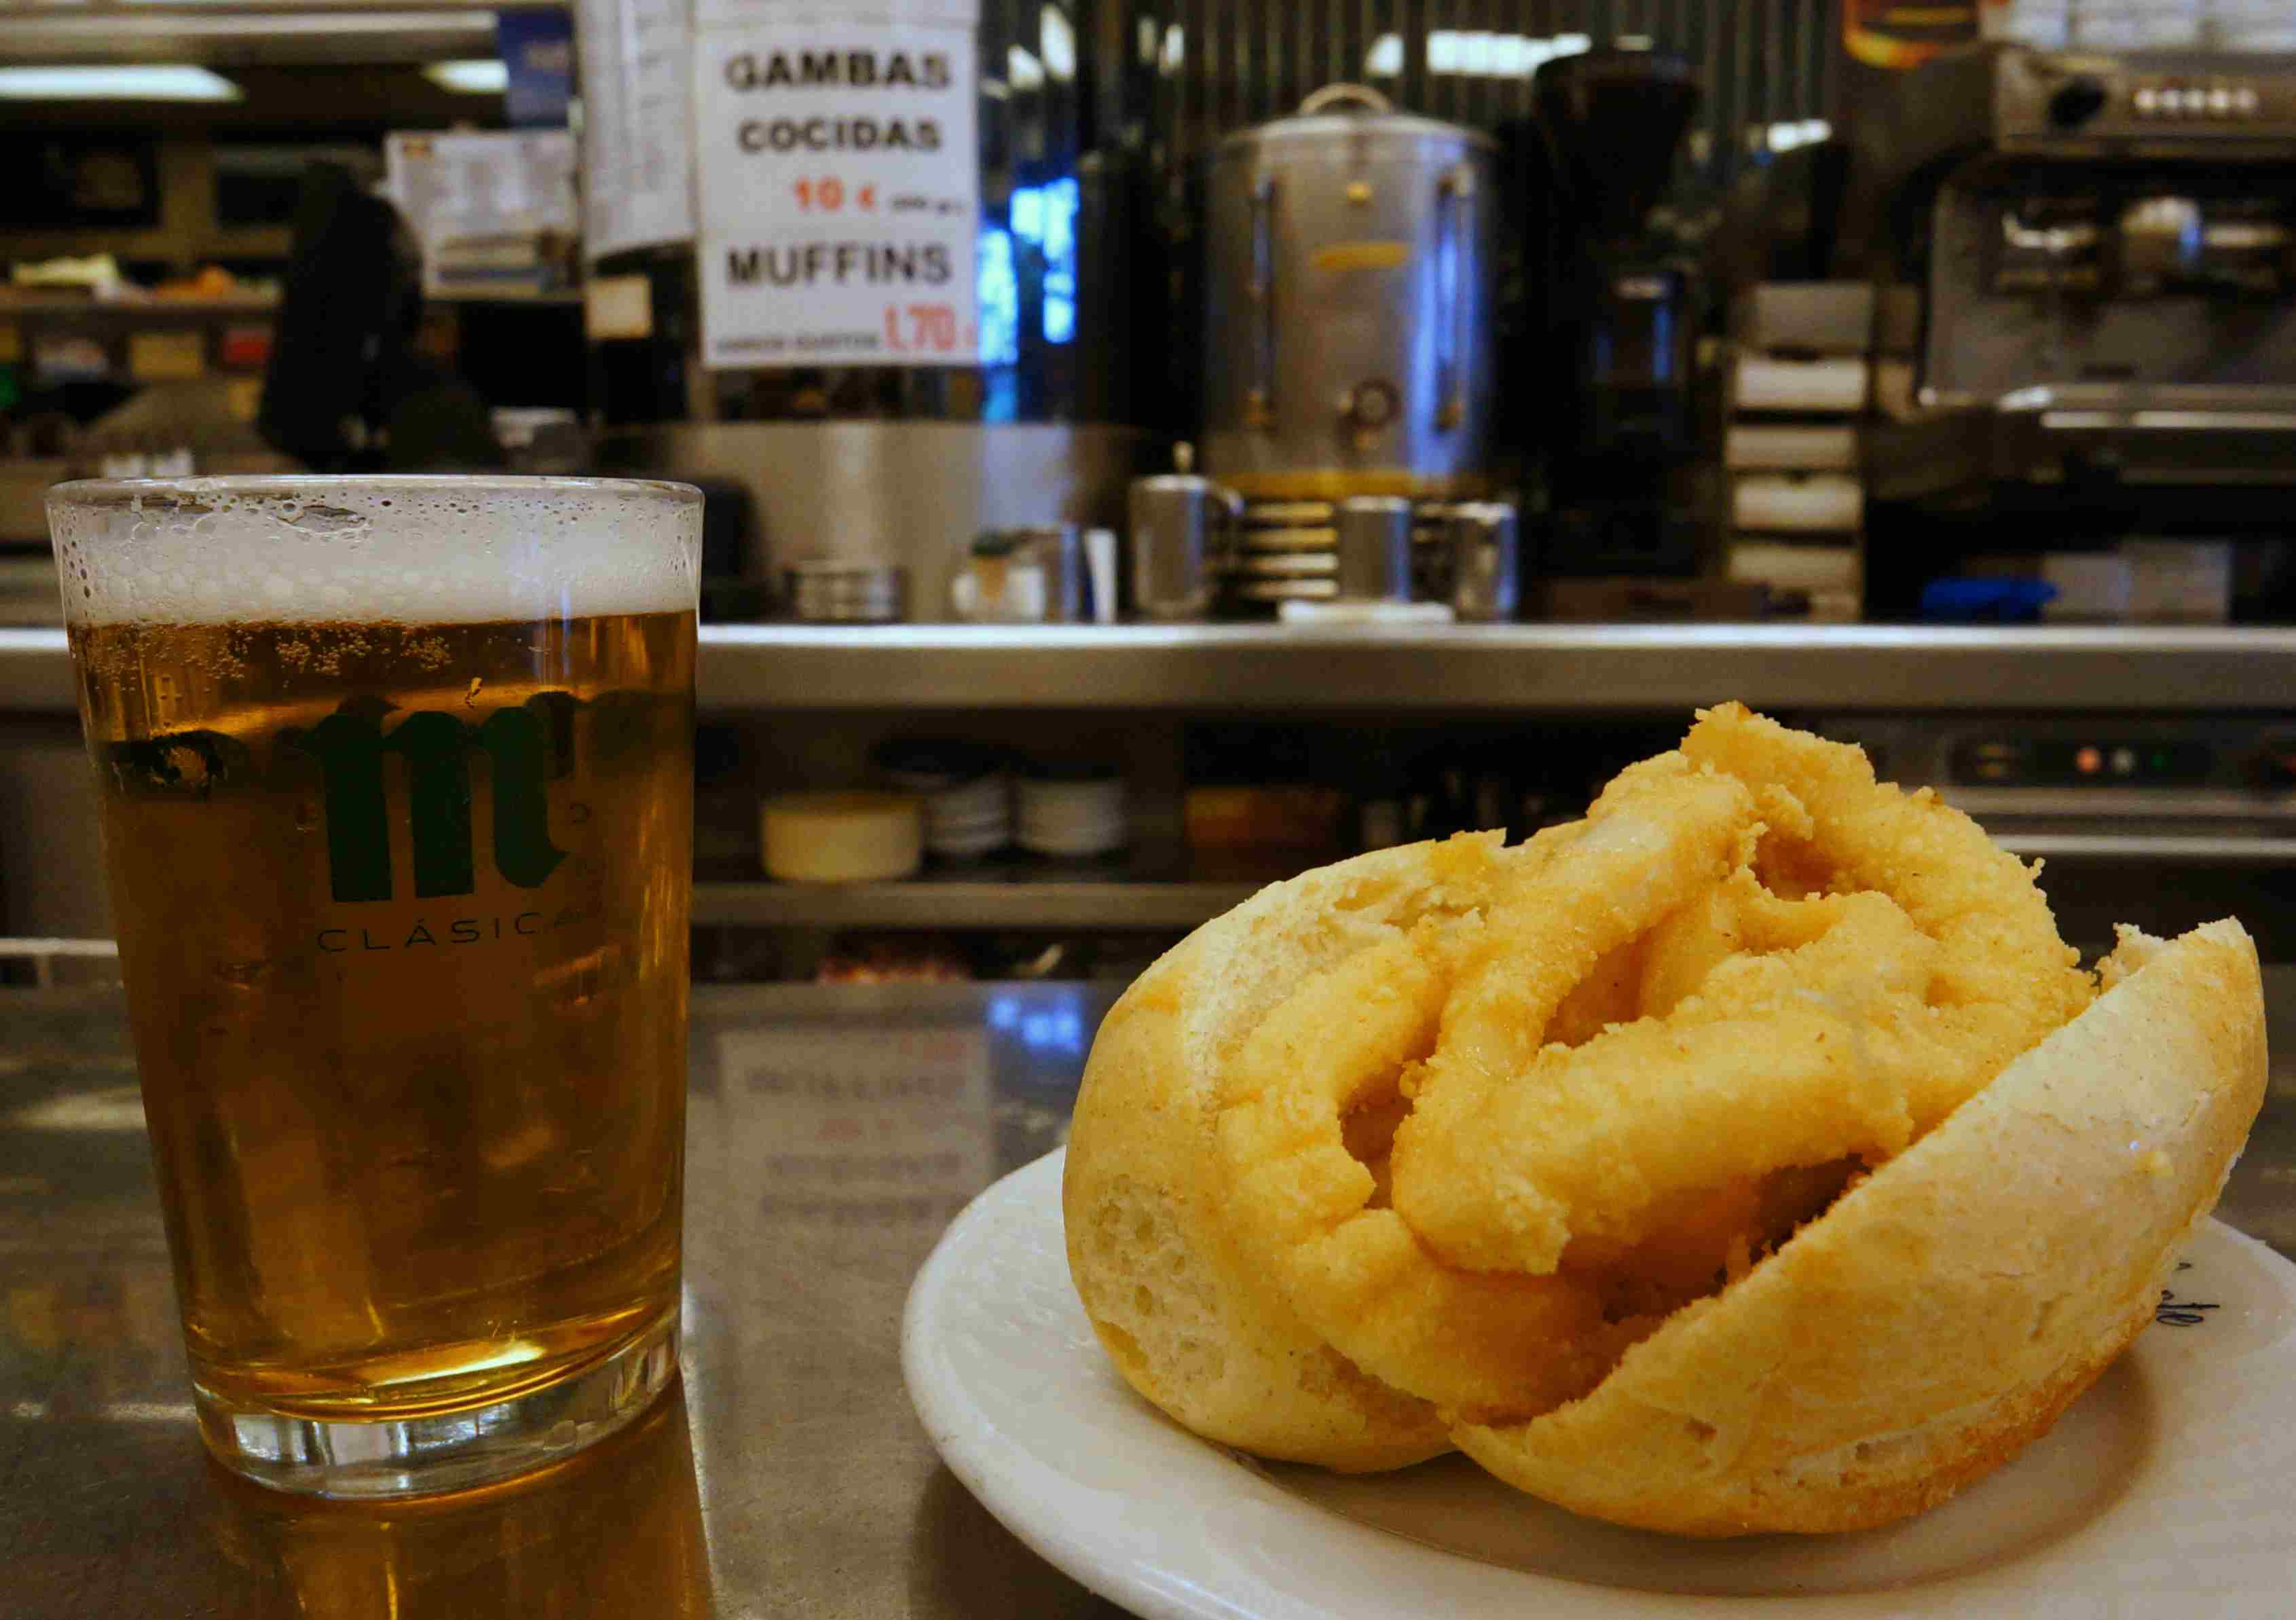 El Brillante in Madrid is famous for its calamare sandwiches